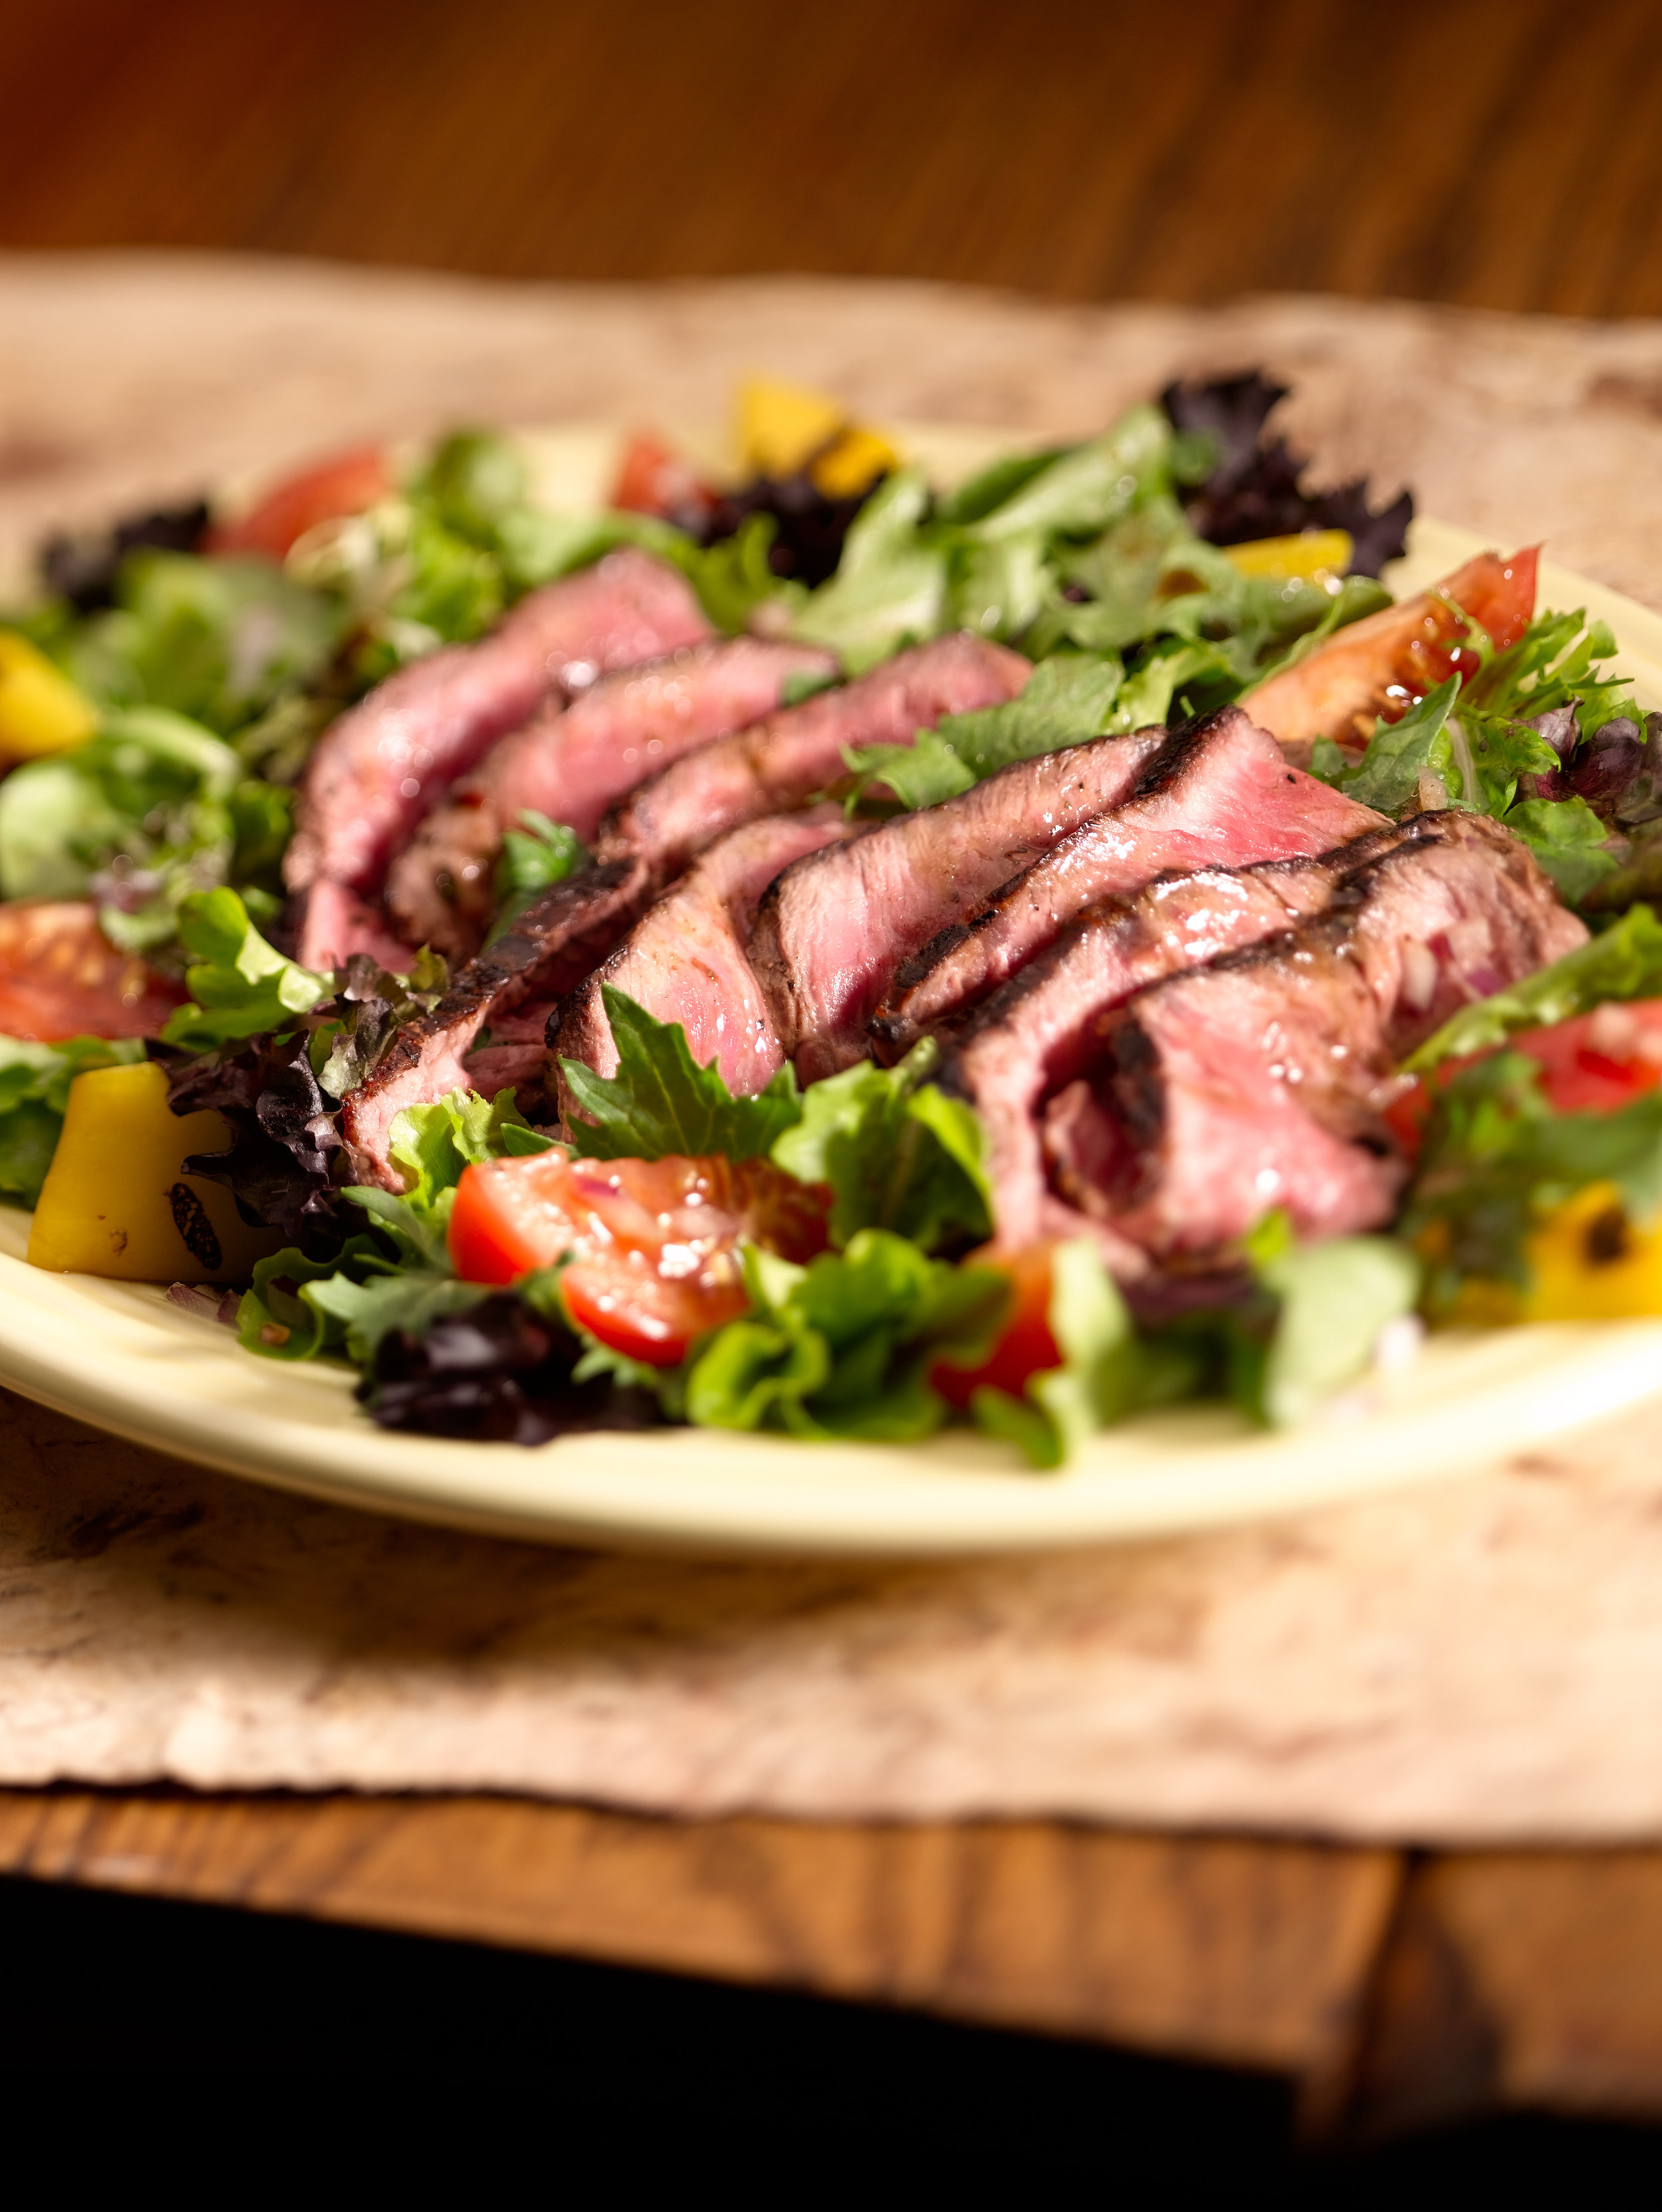 Nurture Ranch Steak Salad Recipe made with Nurture Ranch Grass Fed Tenderloin Filet.